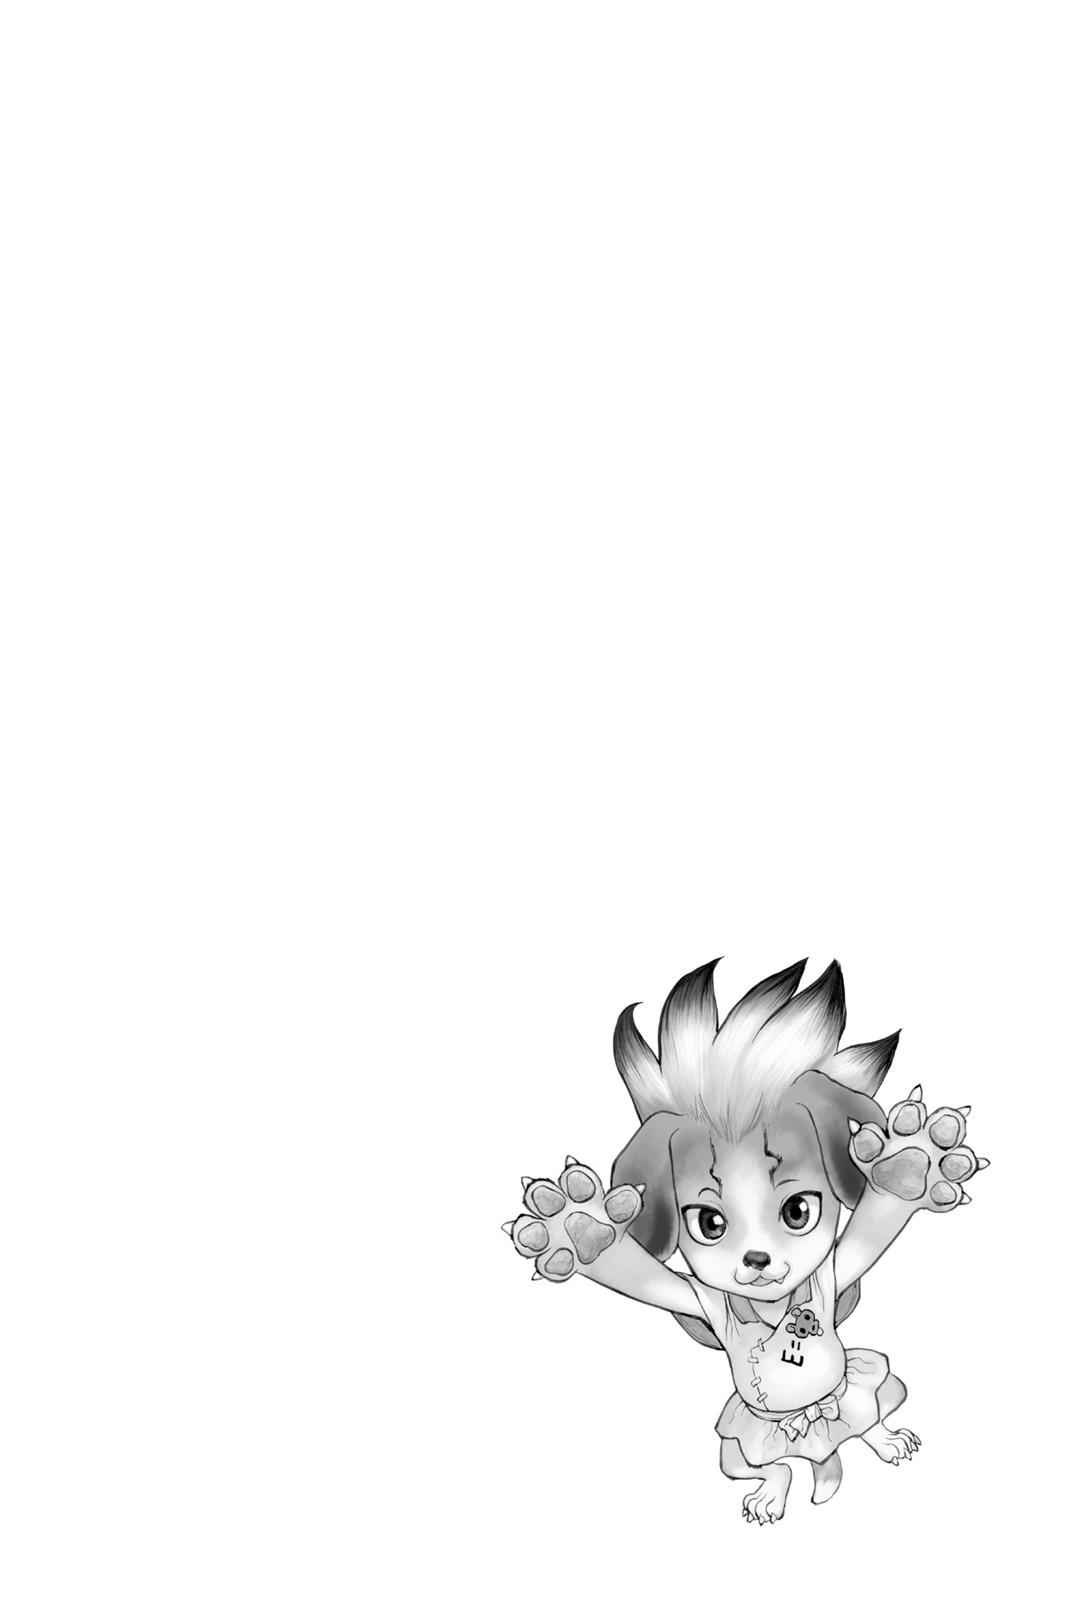 Dr. Stone Chapter 40 Page 3